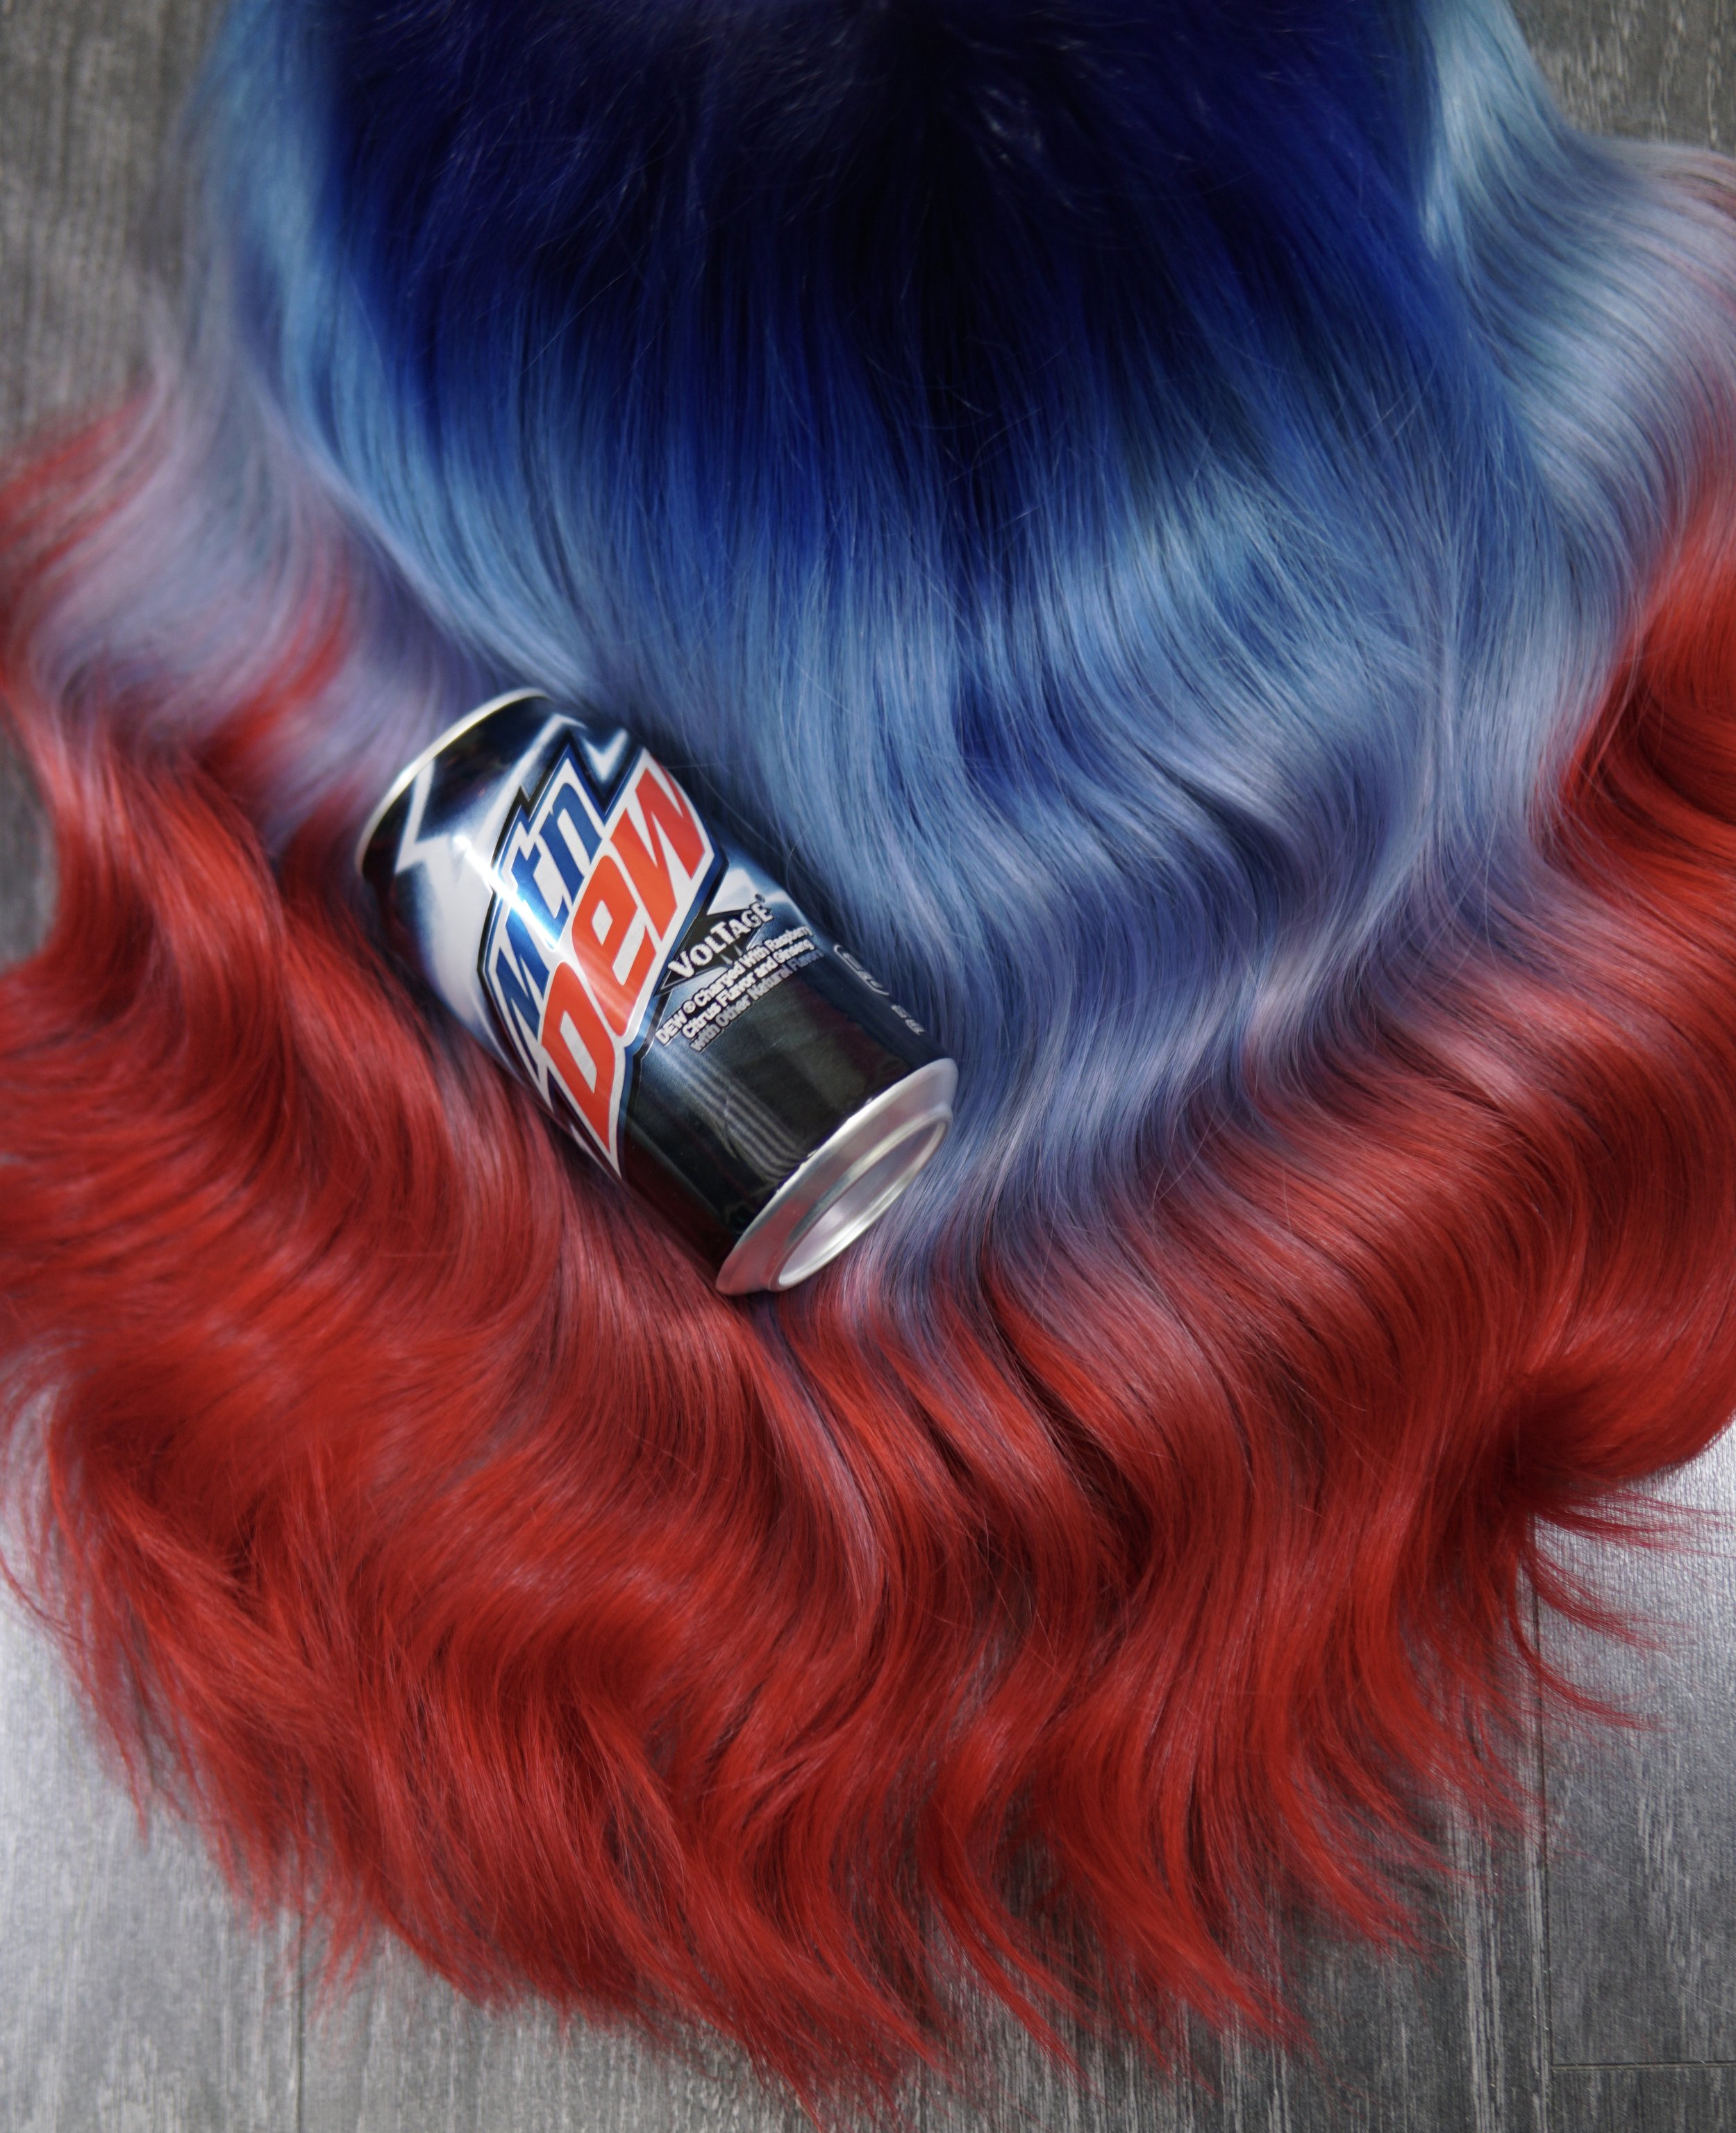 Cryistal Chaos X Mountain Dew: Voltage